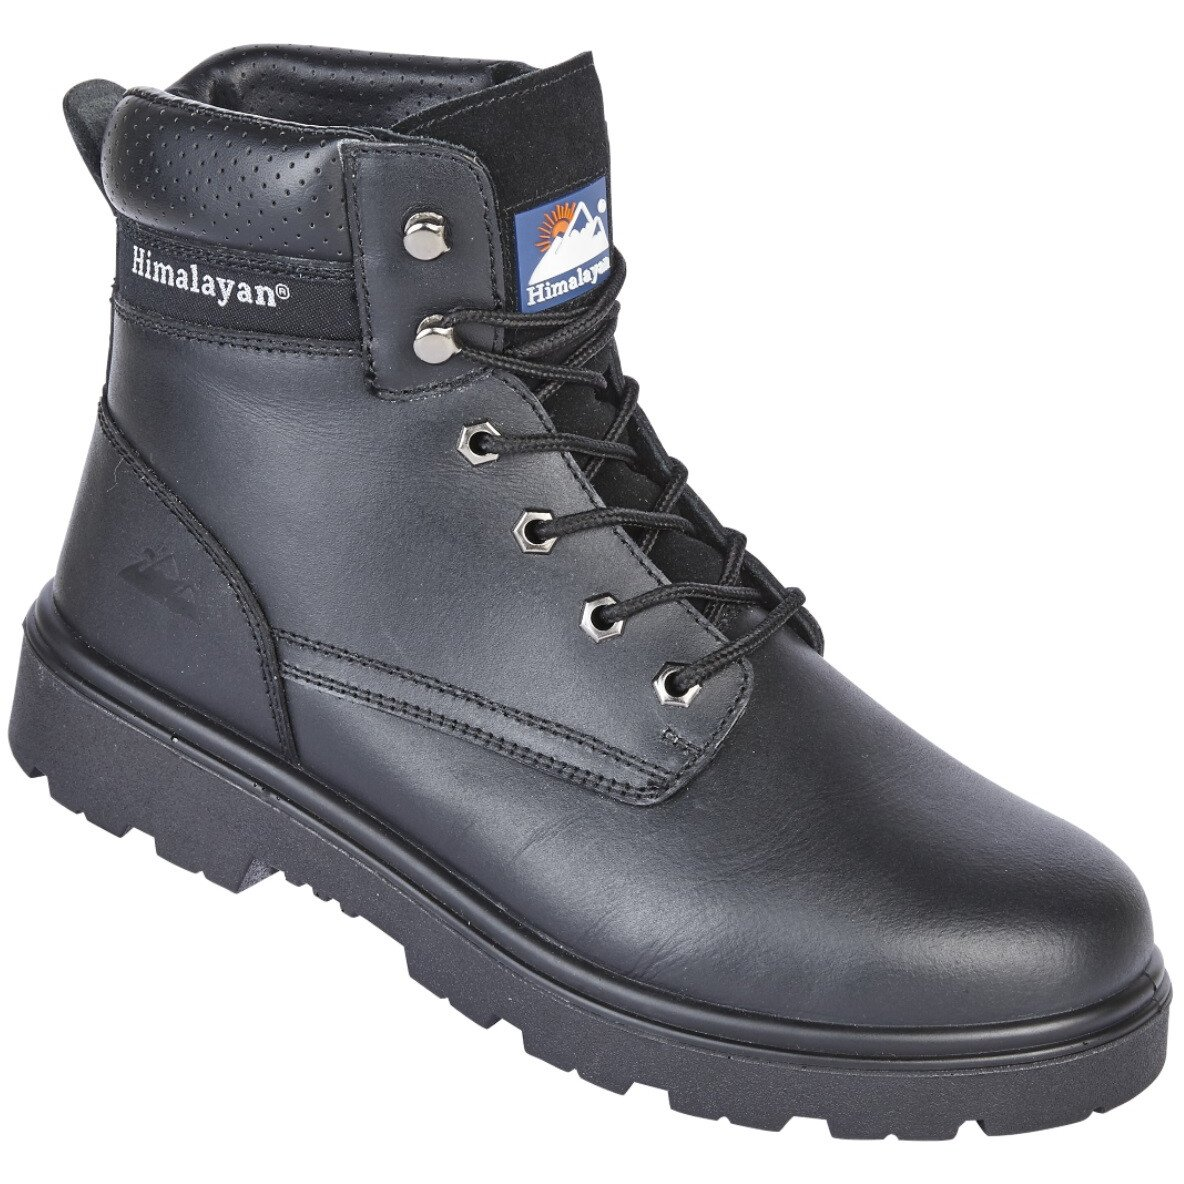 Himalayan 1120 Black Leather Safety Ankle Boot S3 SRC